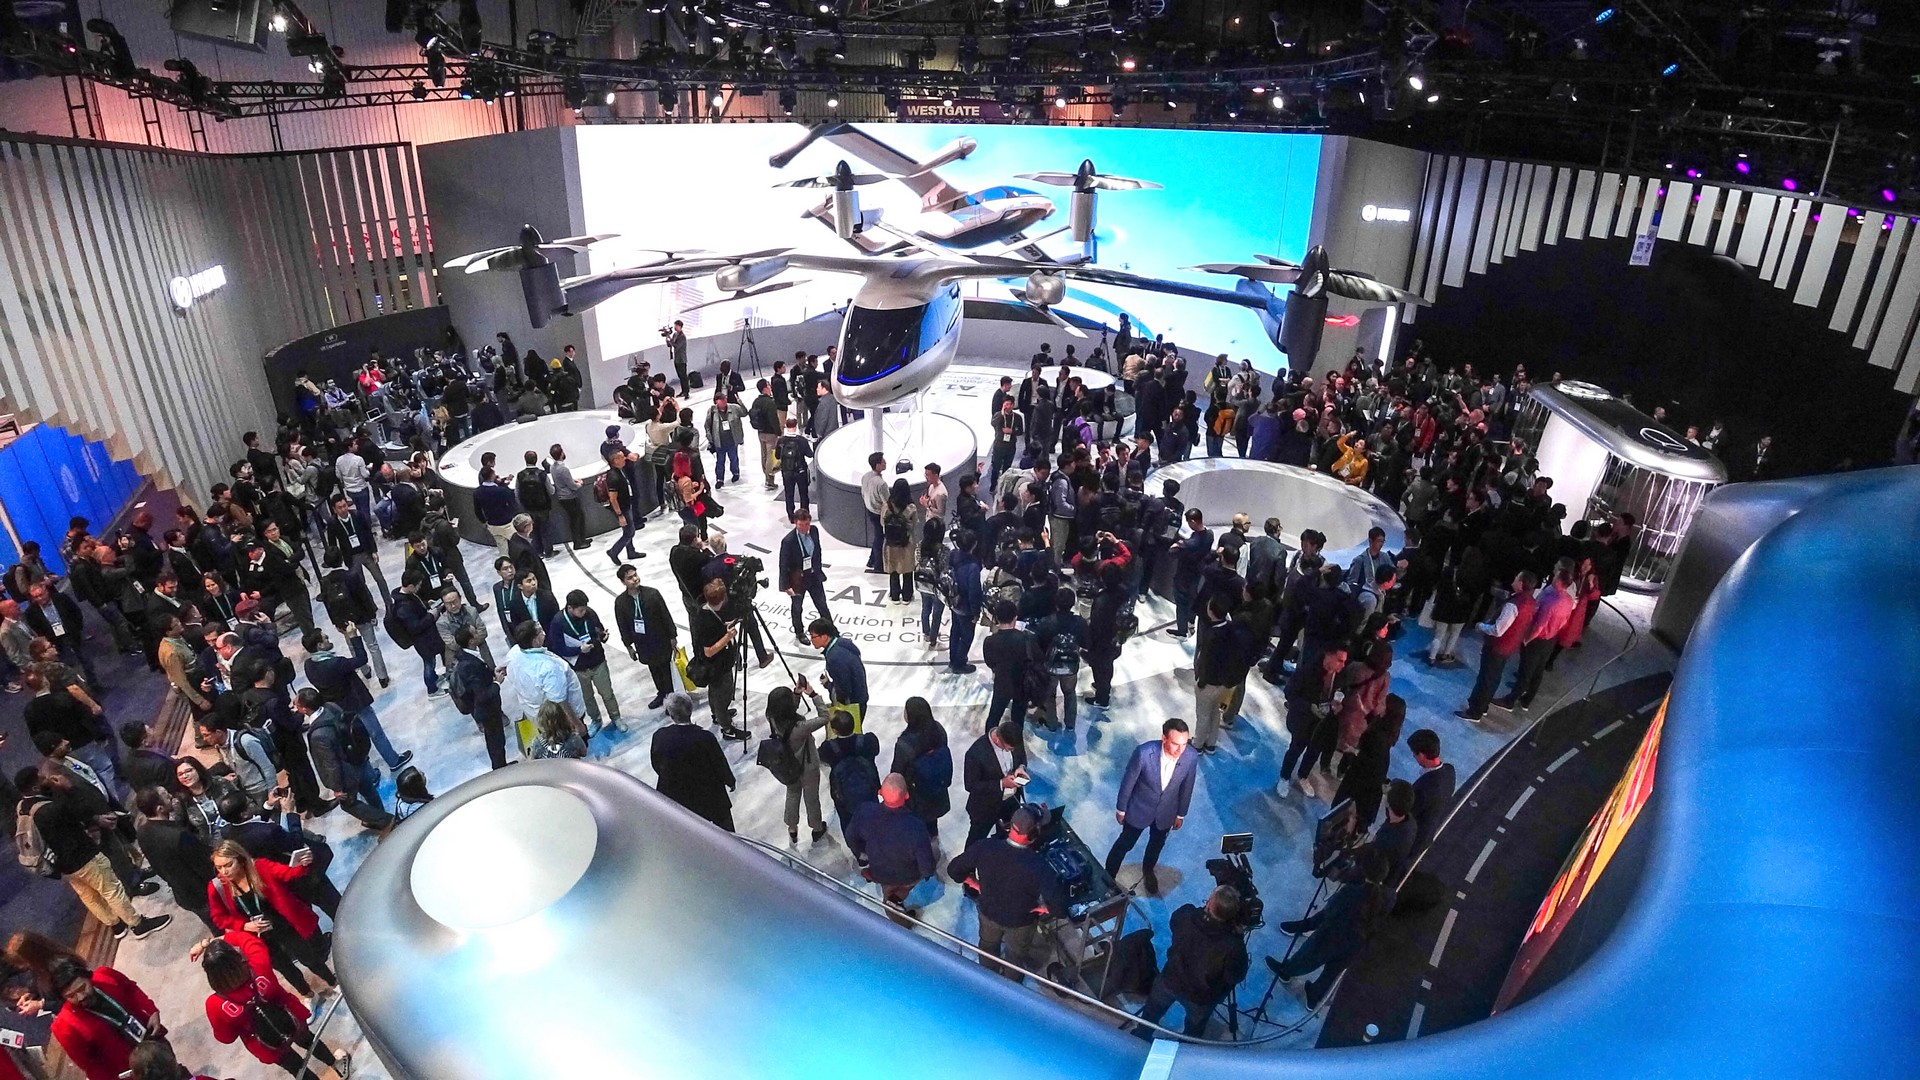 ces-2021-consumer-goods-show-will-be-held-online-cta